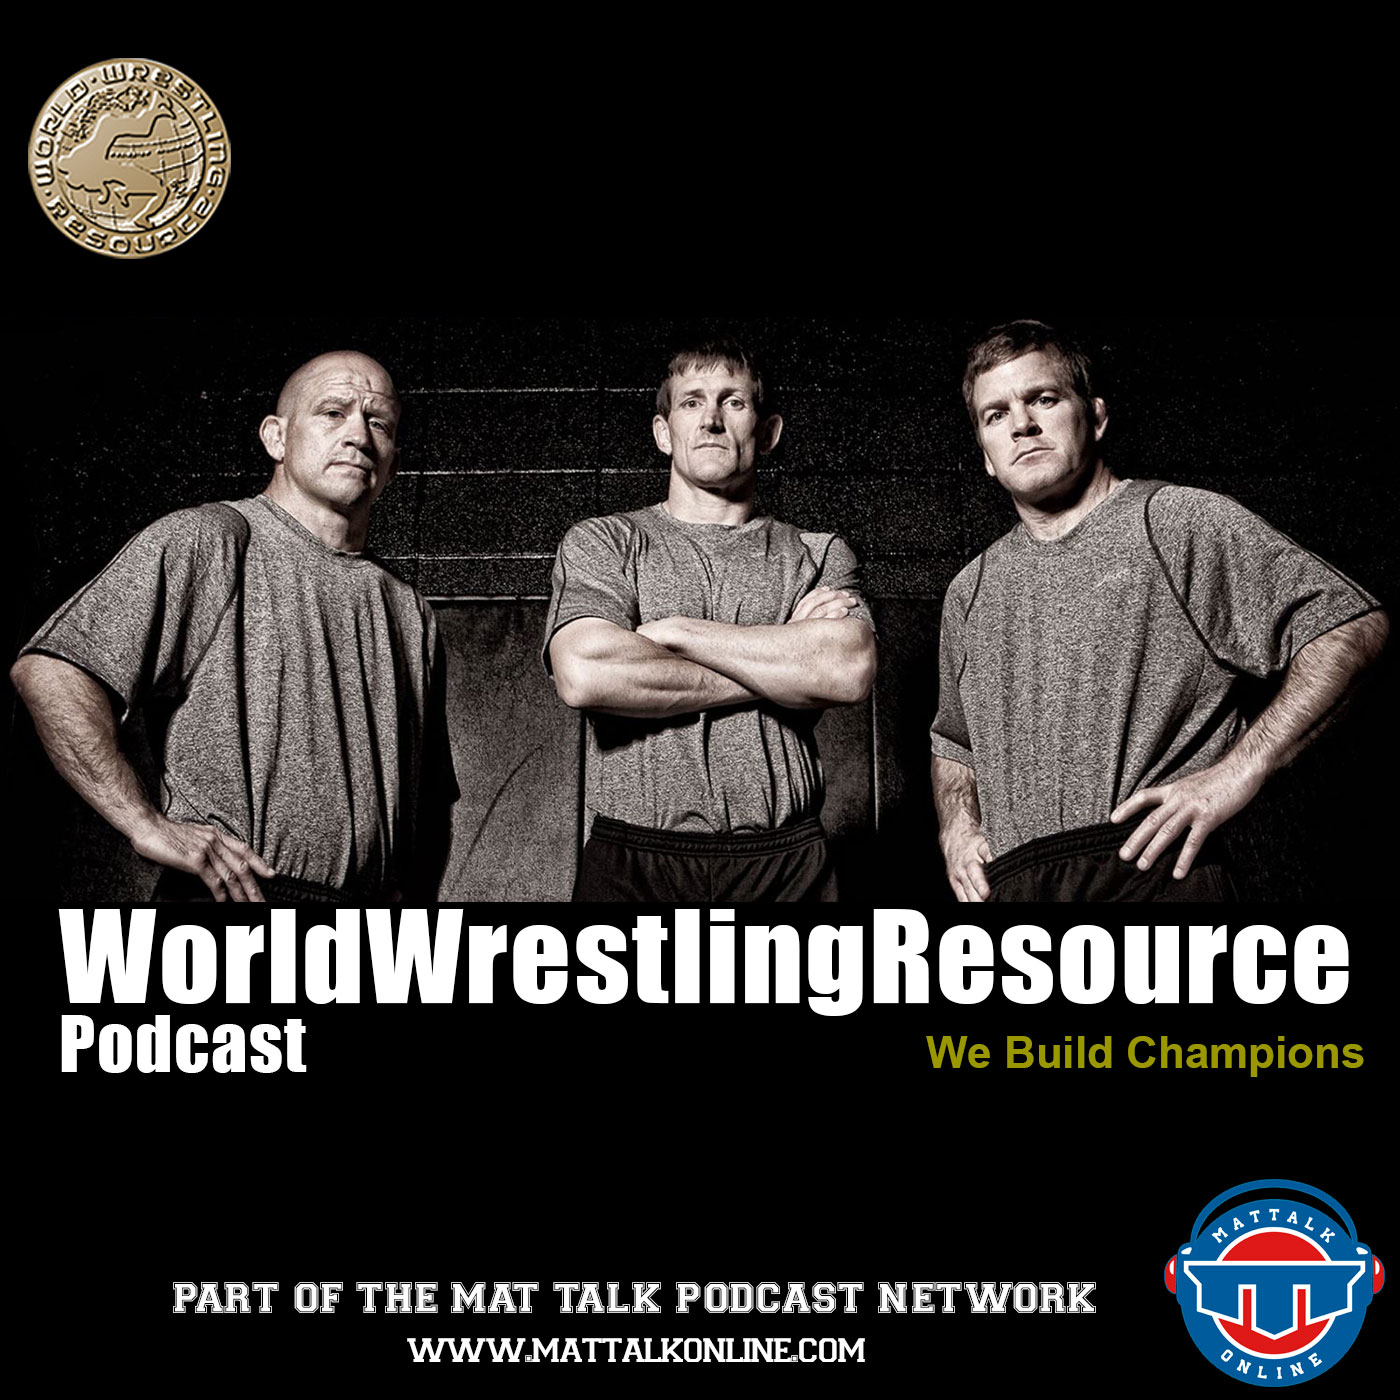 Artwork for WWR11: Dennis Hall and Jon McGovern talk Iranian wrestling and prepping for the postseason